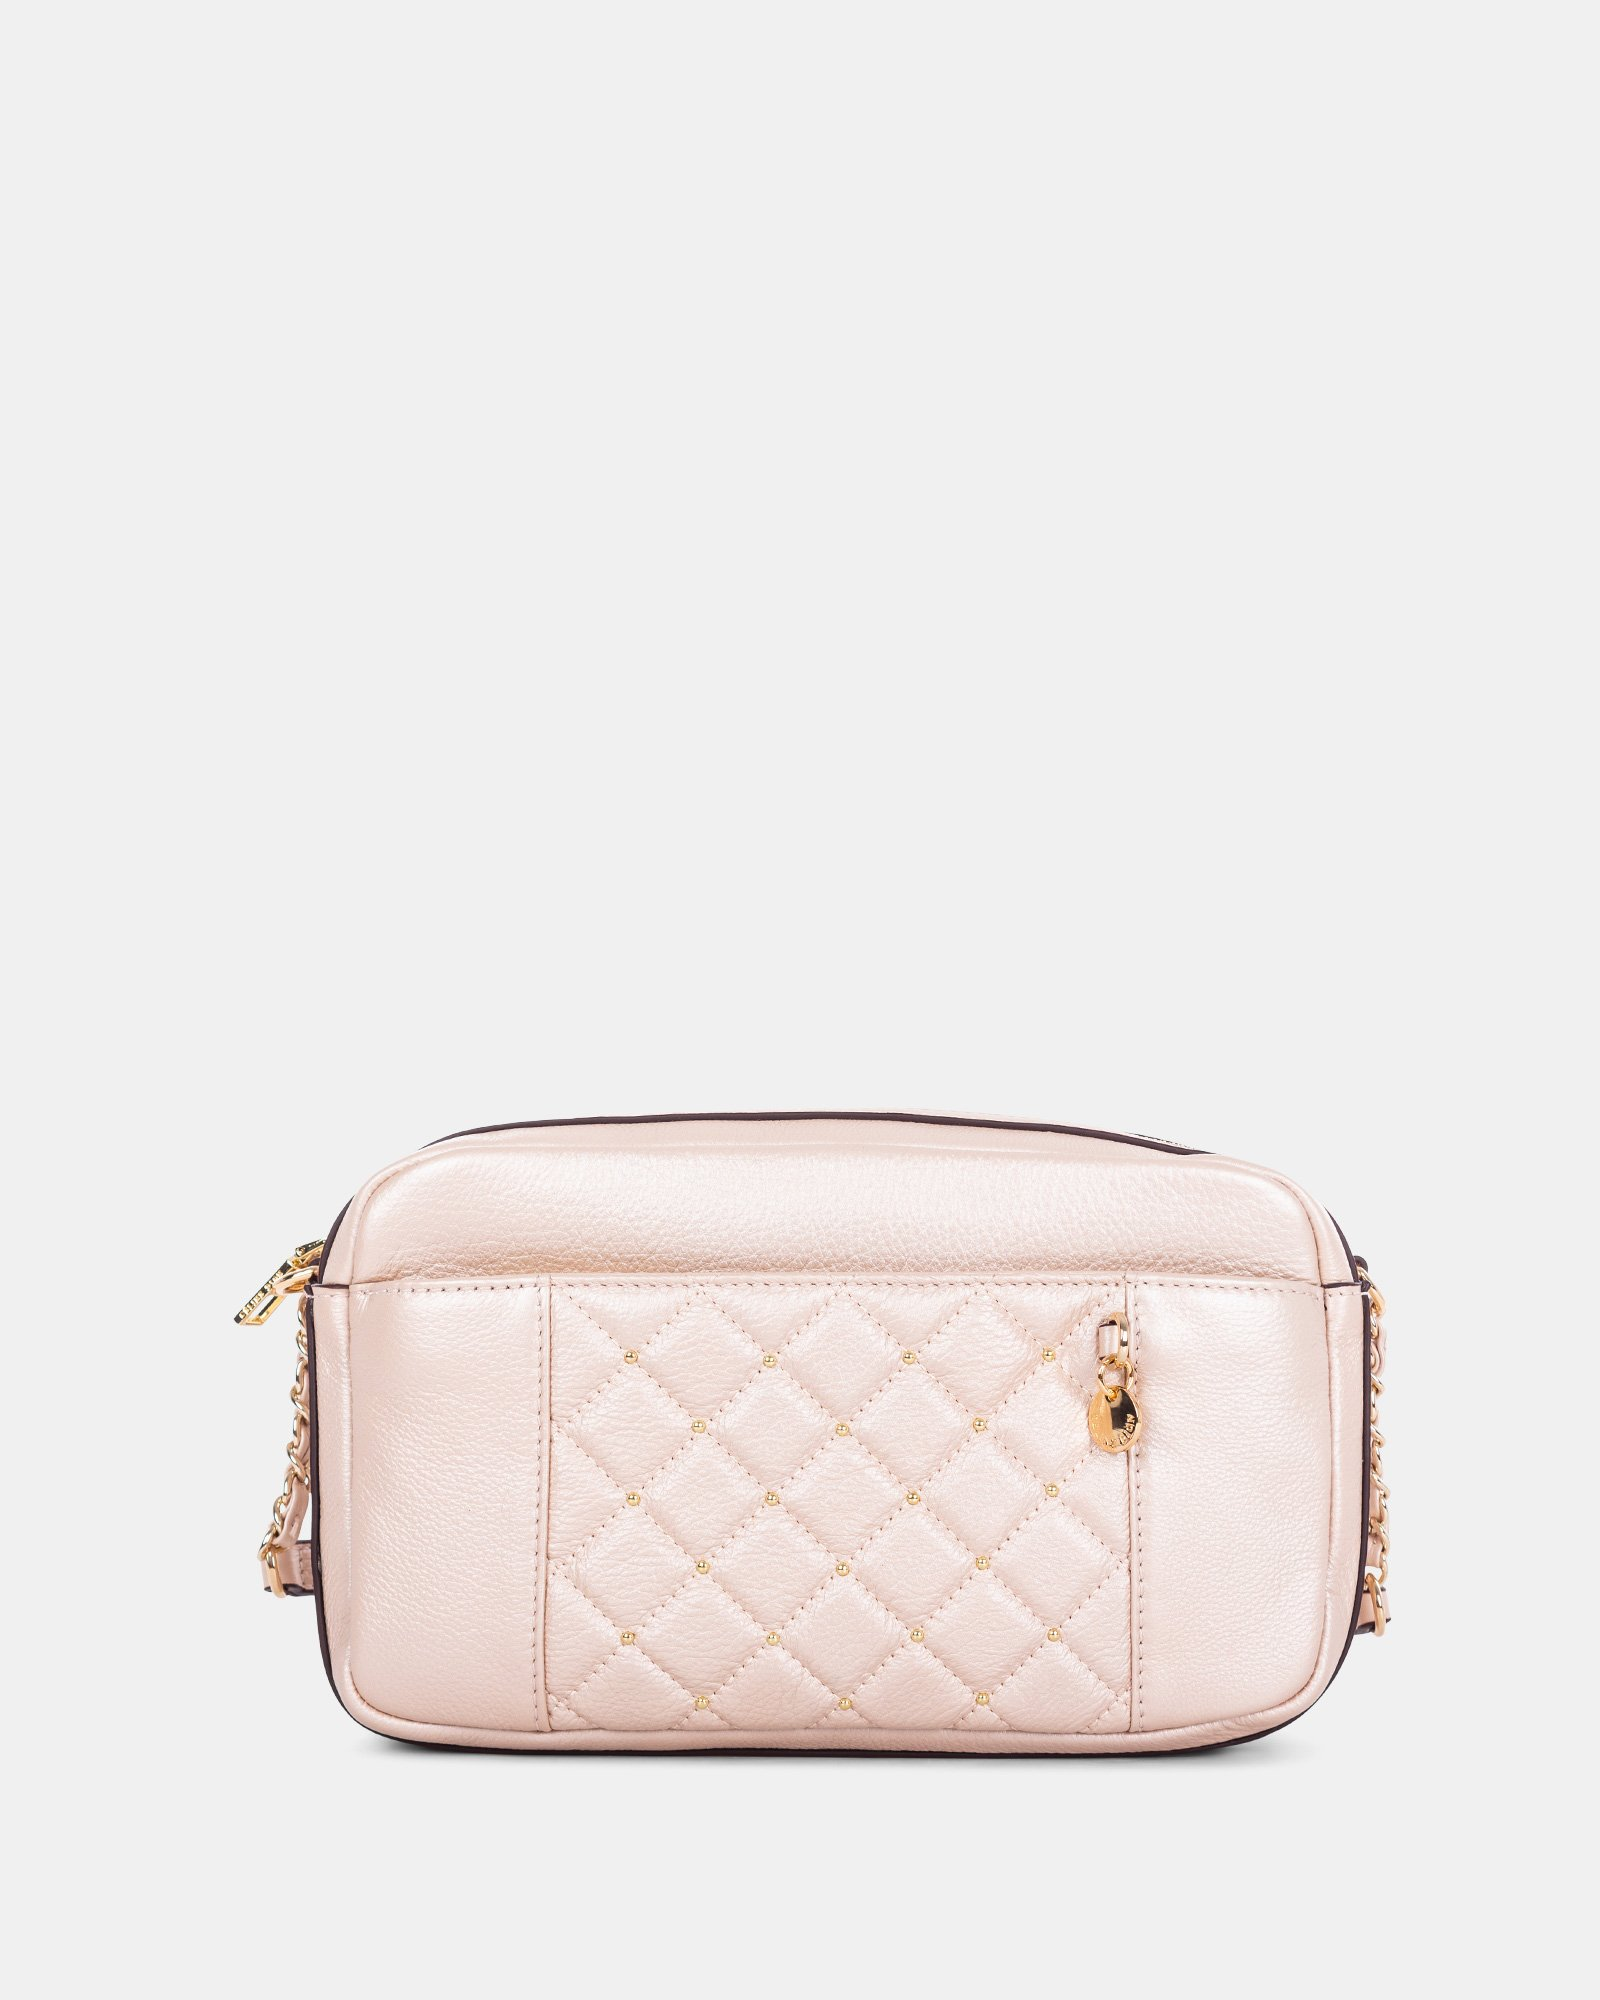 Fastoso - crossbody with Adjustable strap - RoseGold - Céline Dion - Zoom